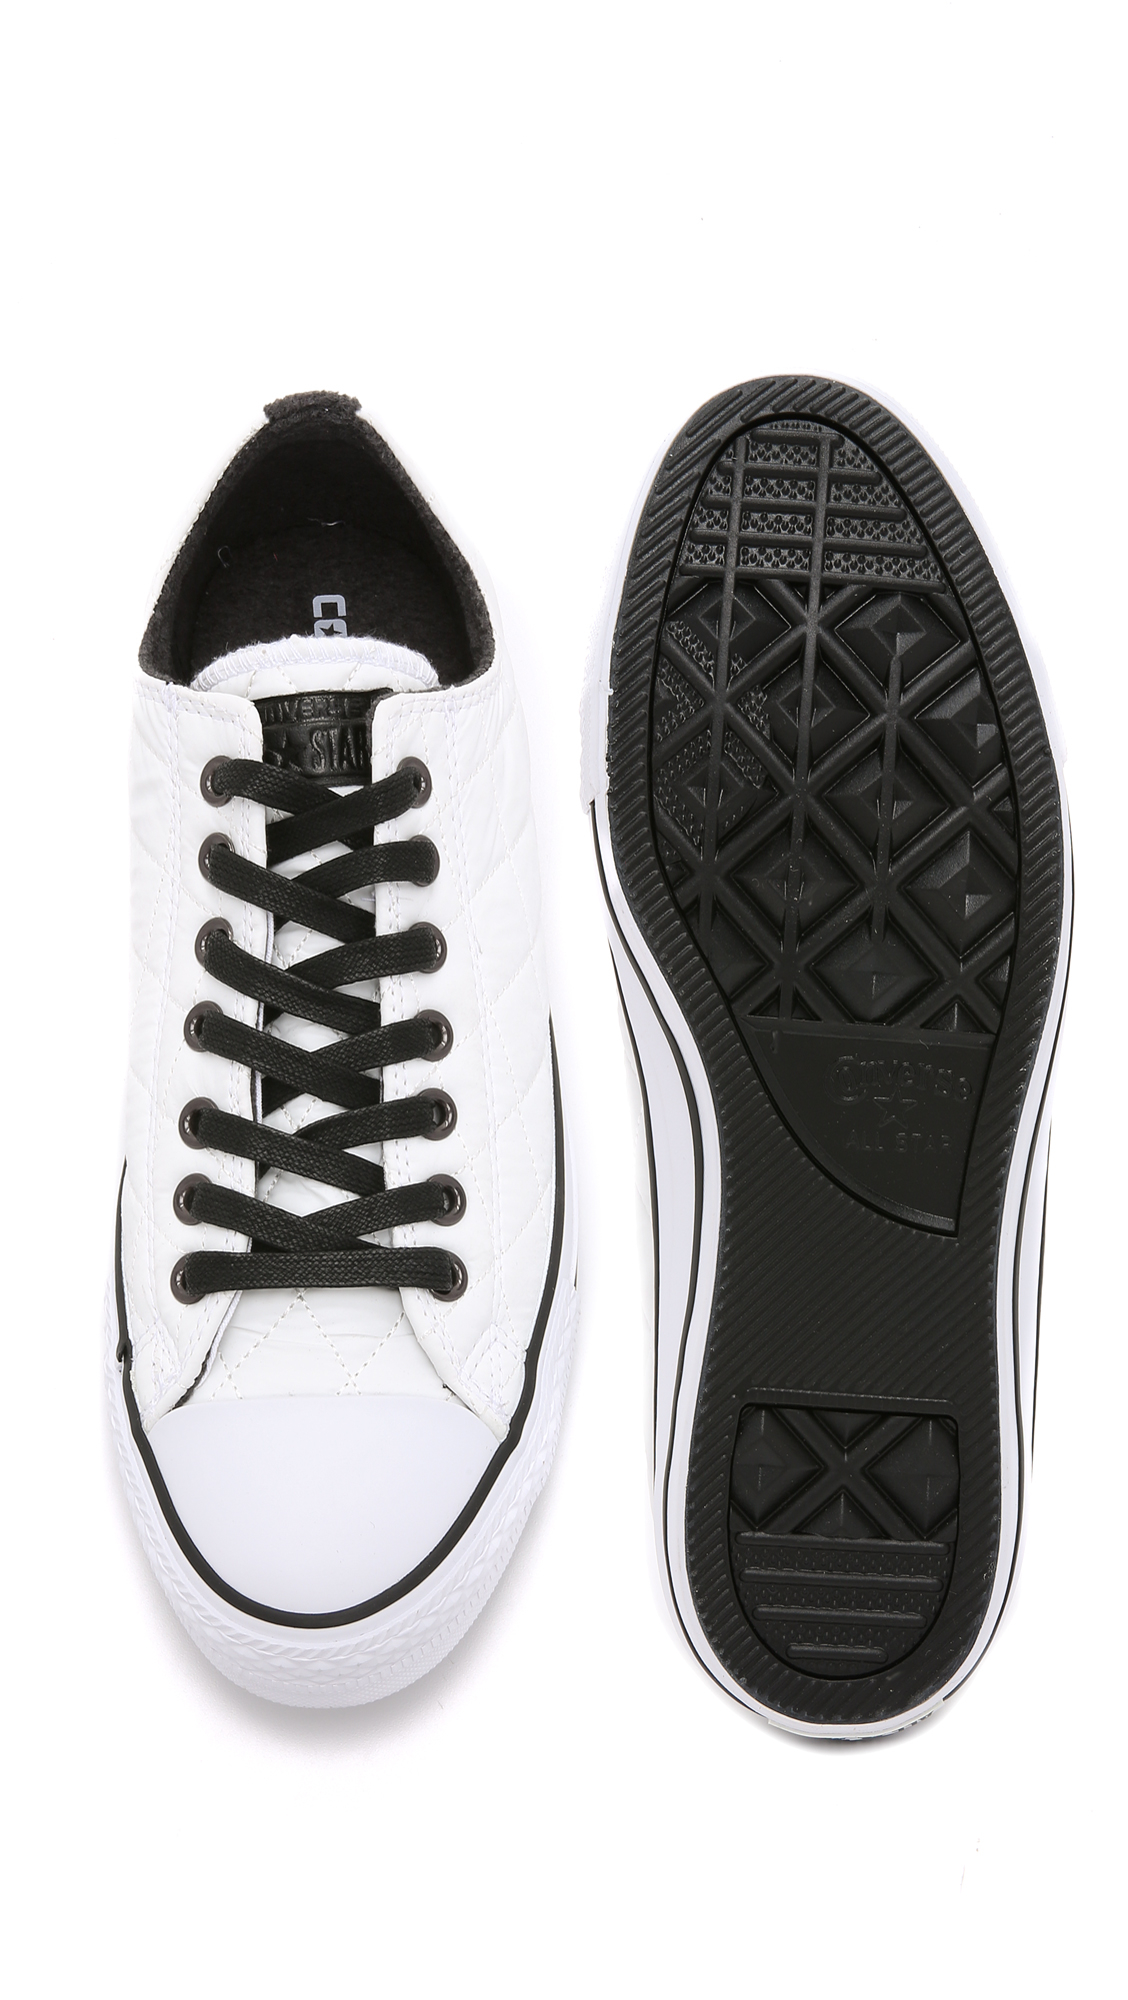 c2b039384ce7 Lyst - Converse Chuck Taylor All Star Quilted Nylon Sneakers in ...